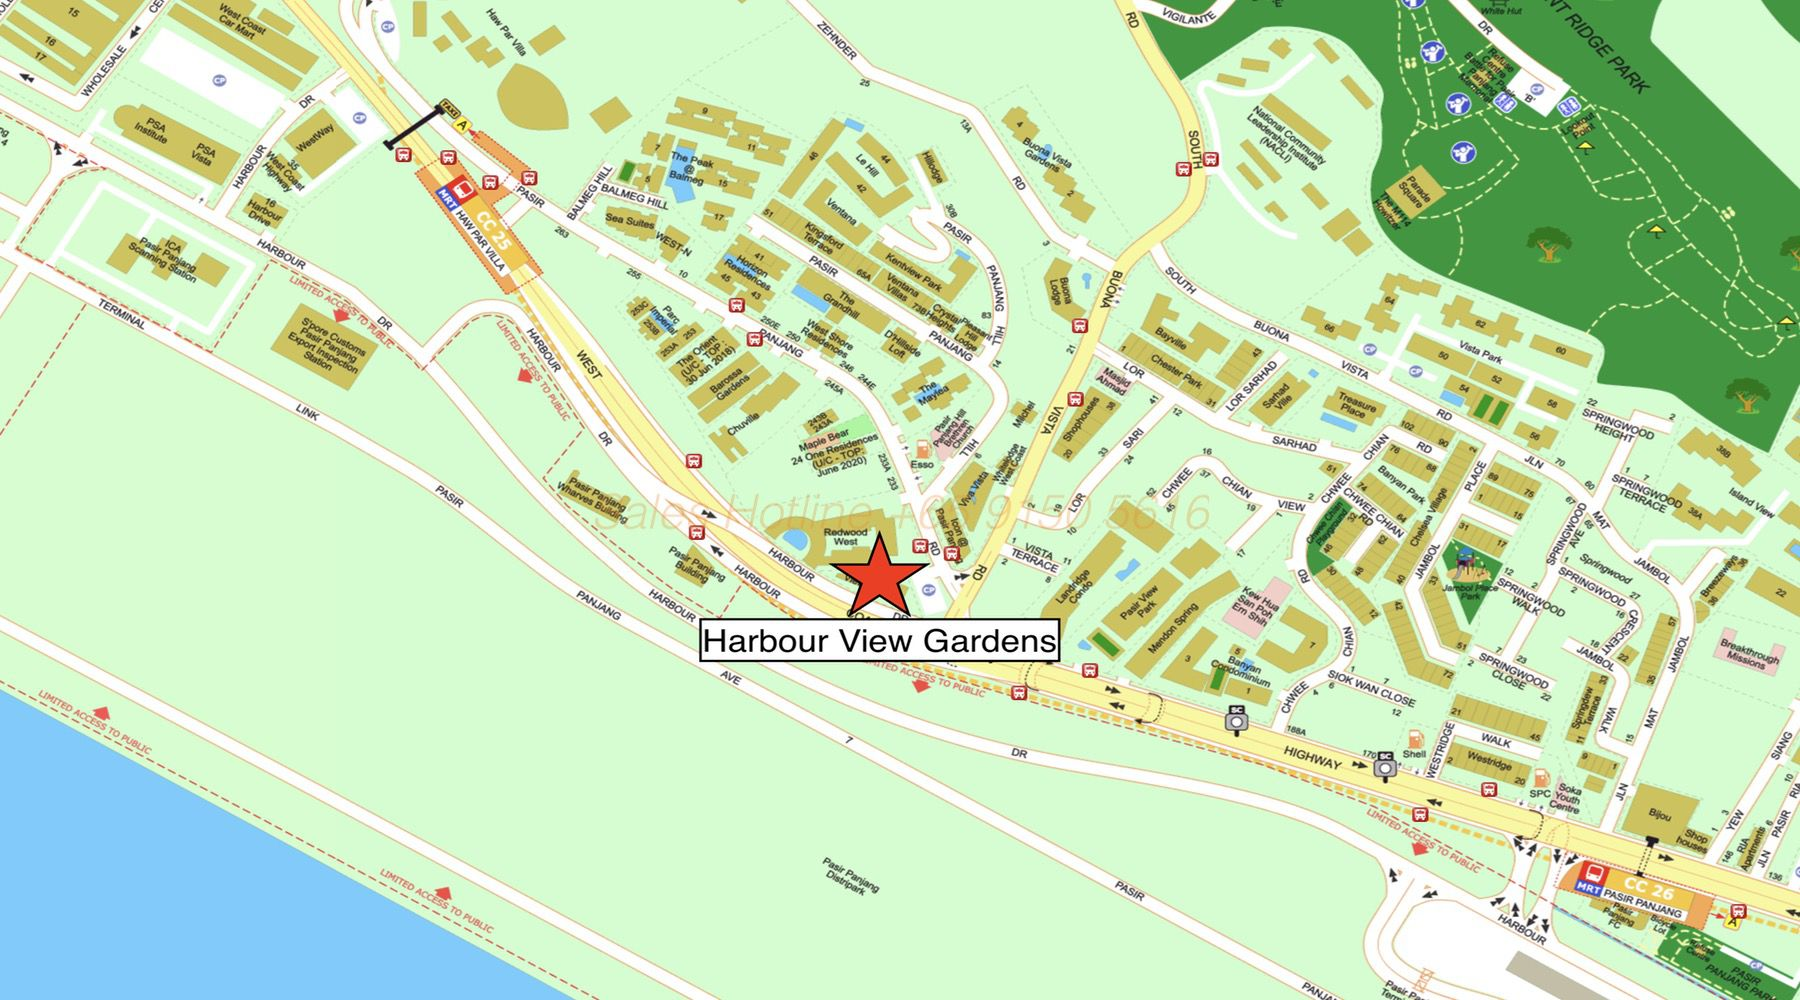 Harbour View Gardens - Location Map